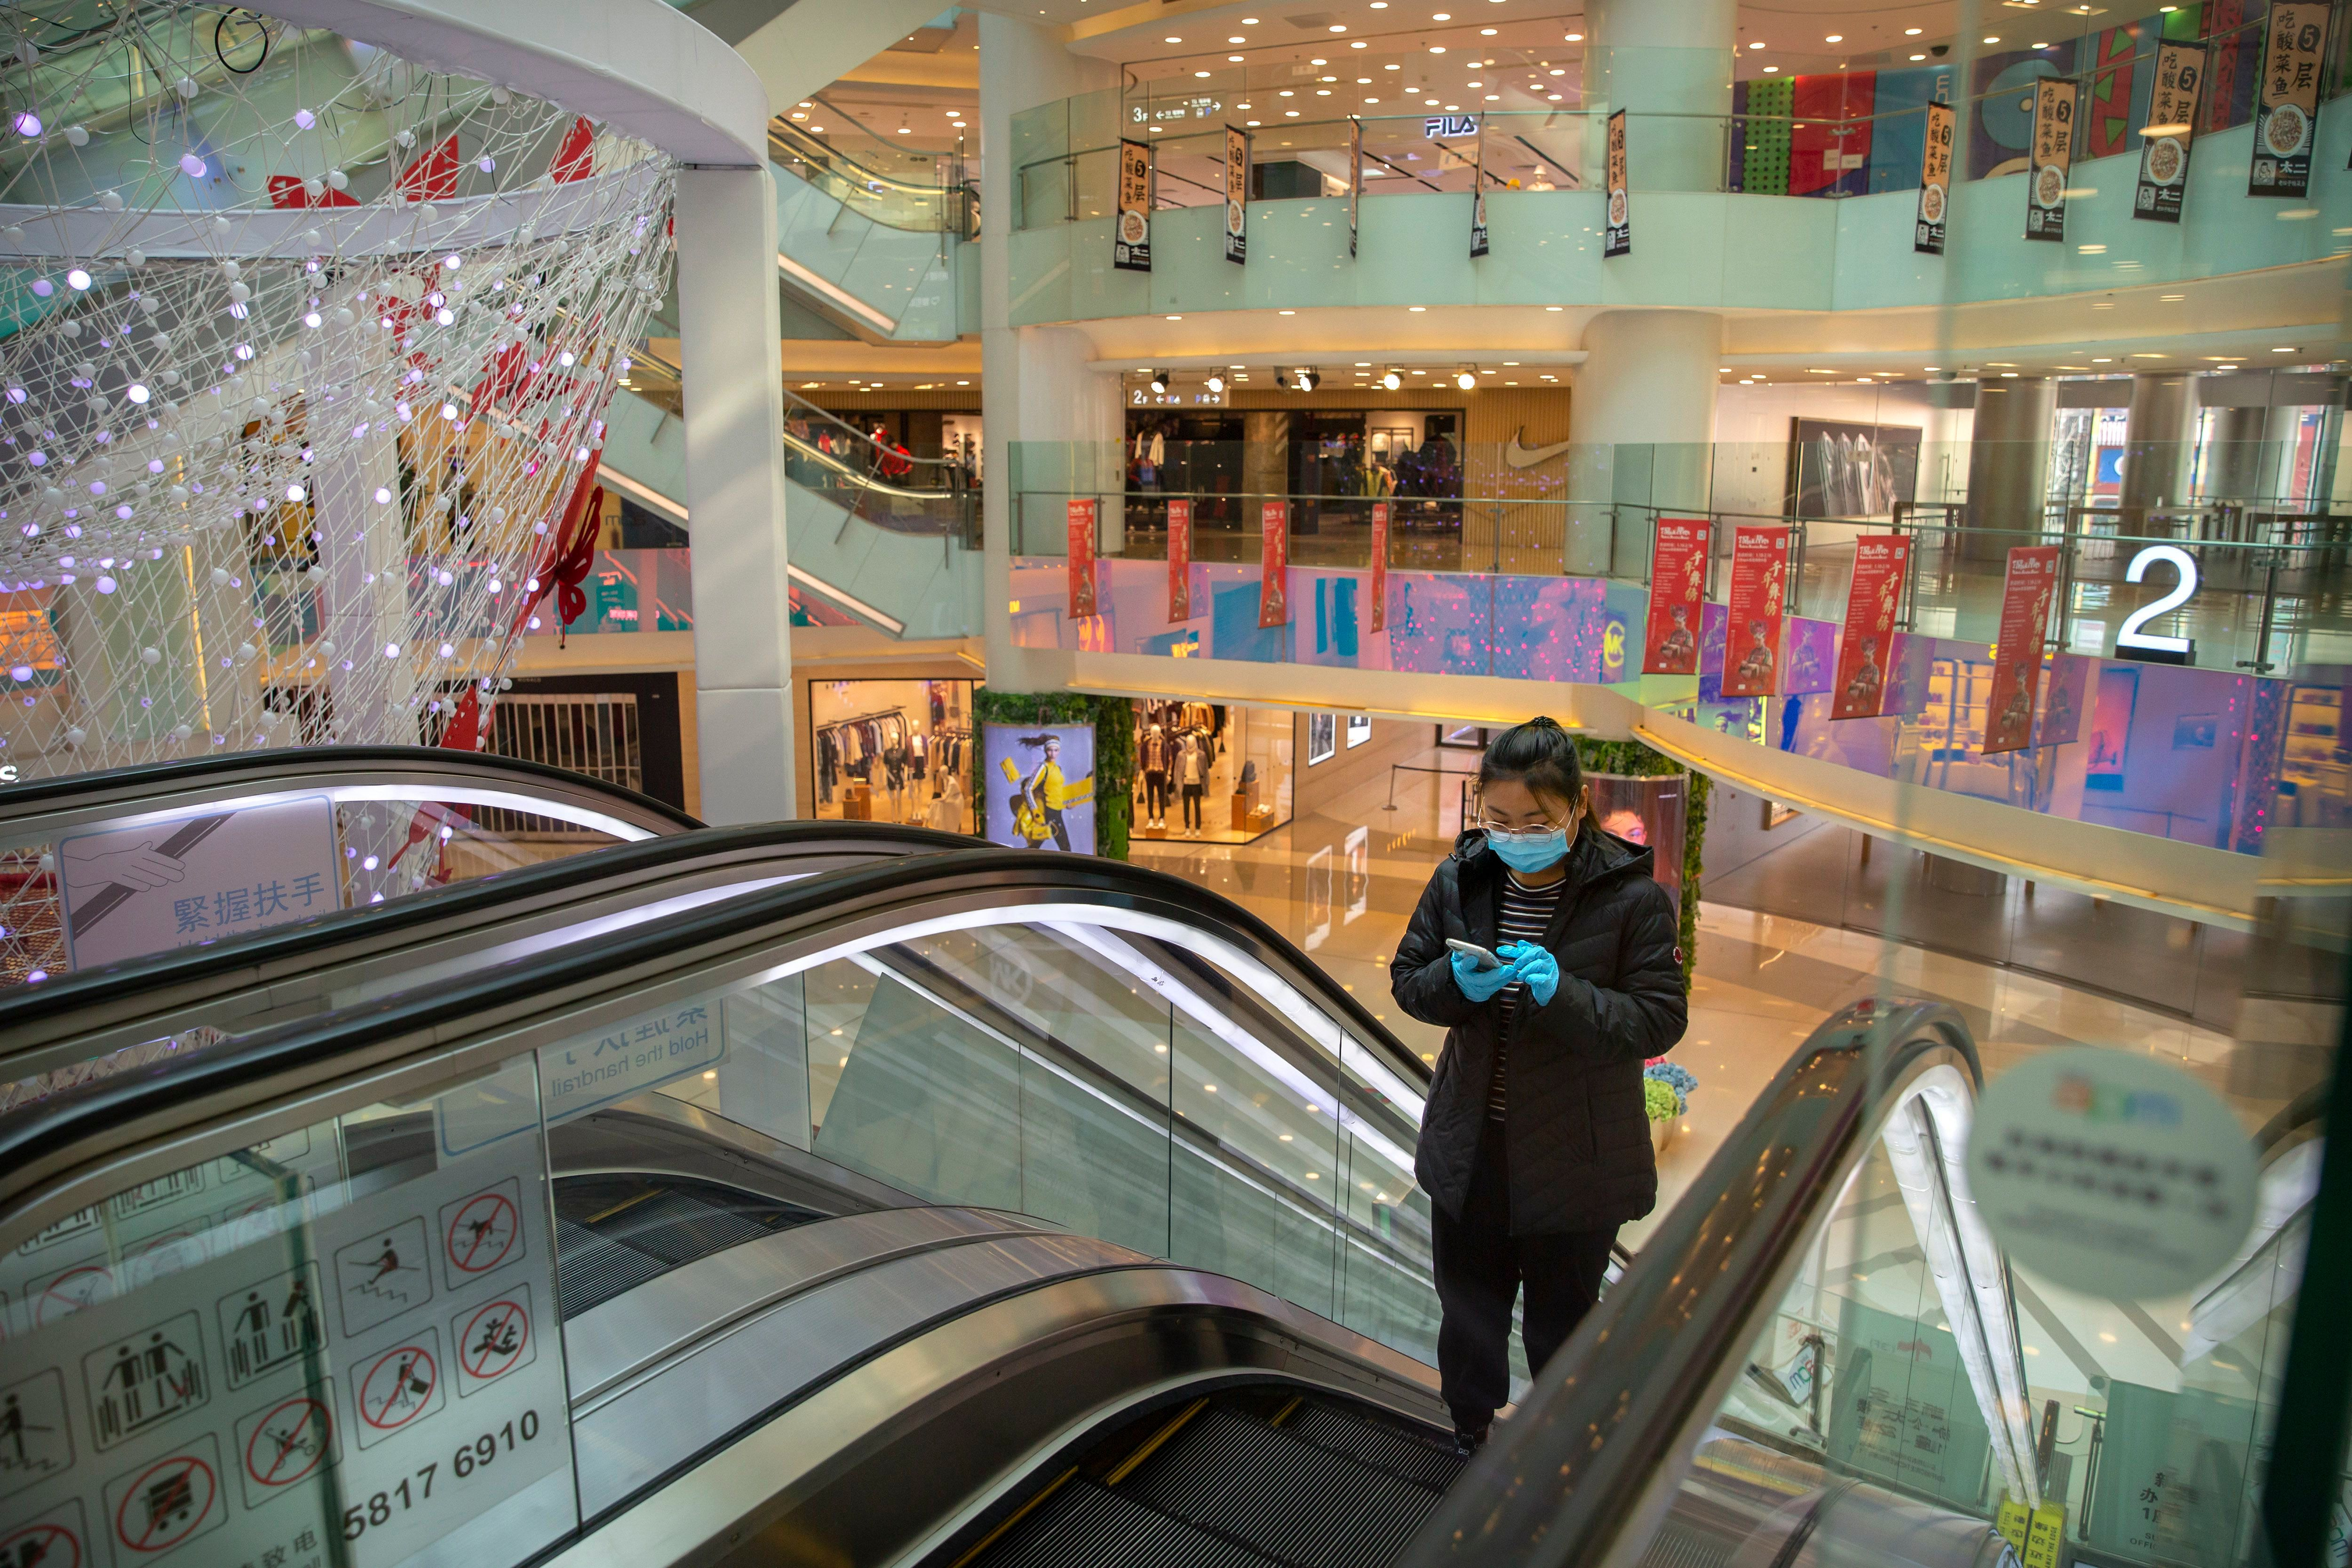 A woman wearing a face mask and gloves rides an escalator at a mostly empty shopping mall in Beijing.